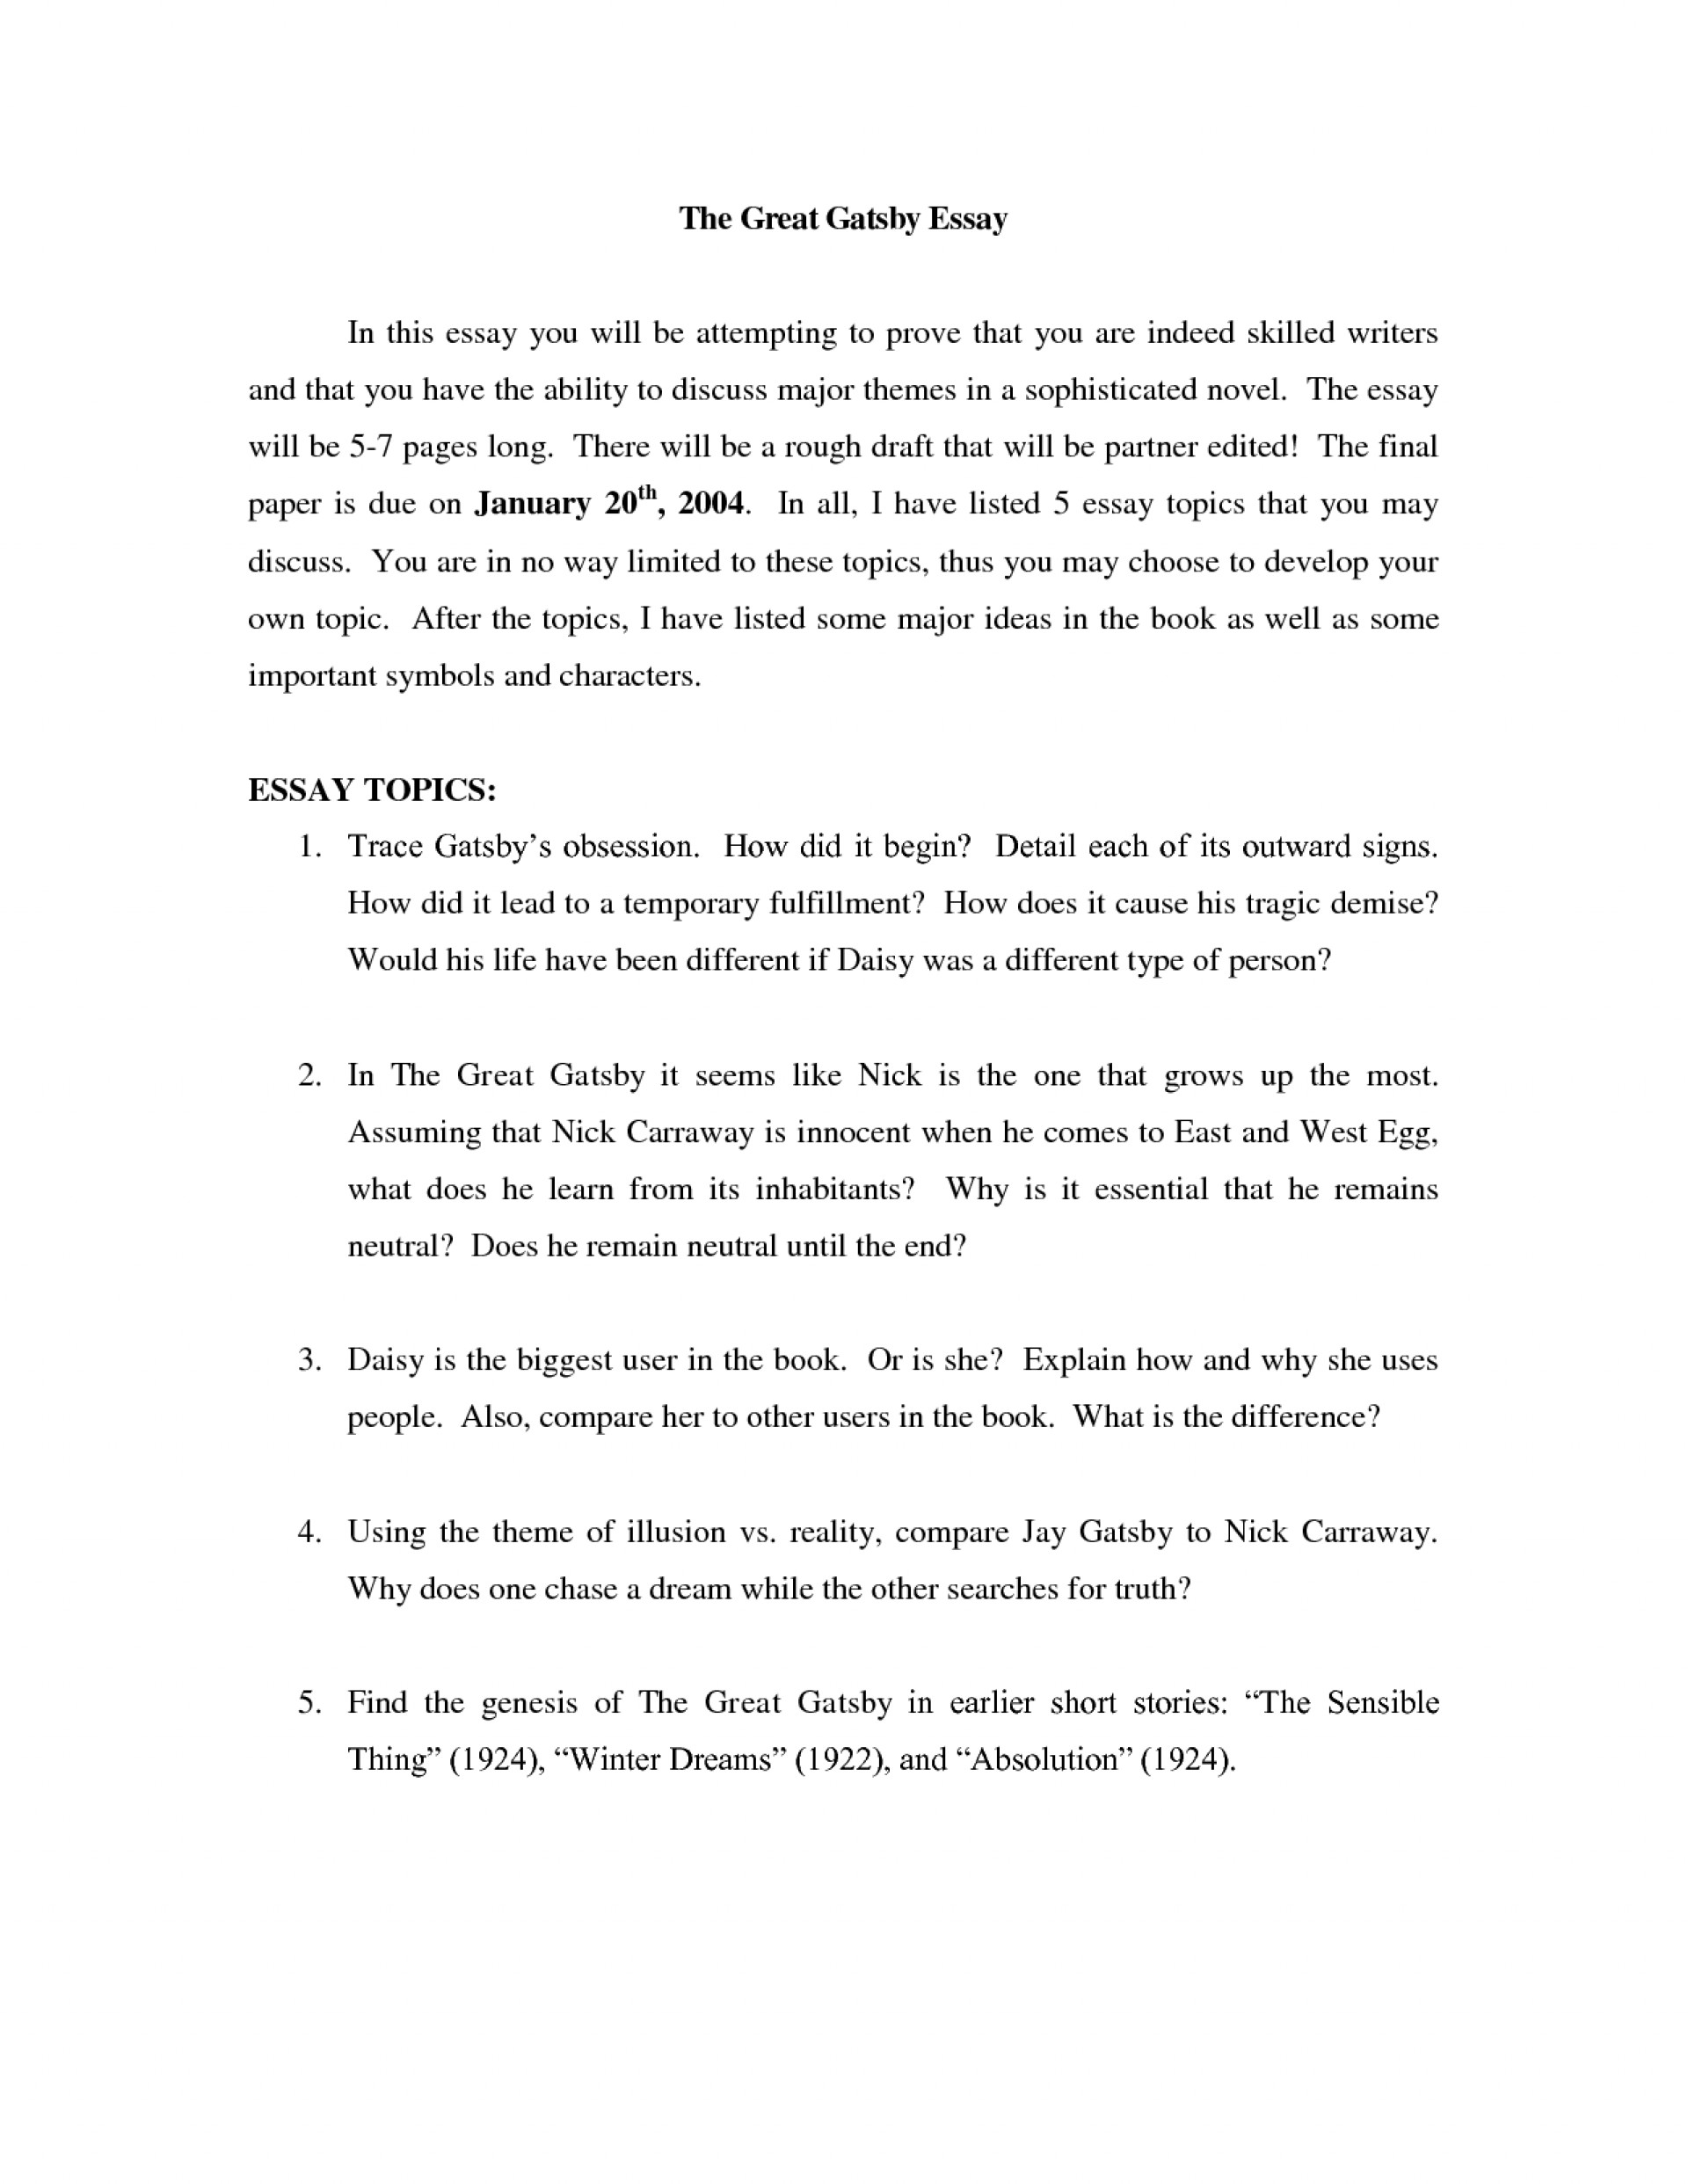 003 Essays On Cyber Bullying Best English Essay I Need An Trees Thesis Statement For The Great Gatsby Template 4ni Argumentative Topics Persuasive About Cyberbullying Unique Pdf 1920